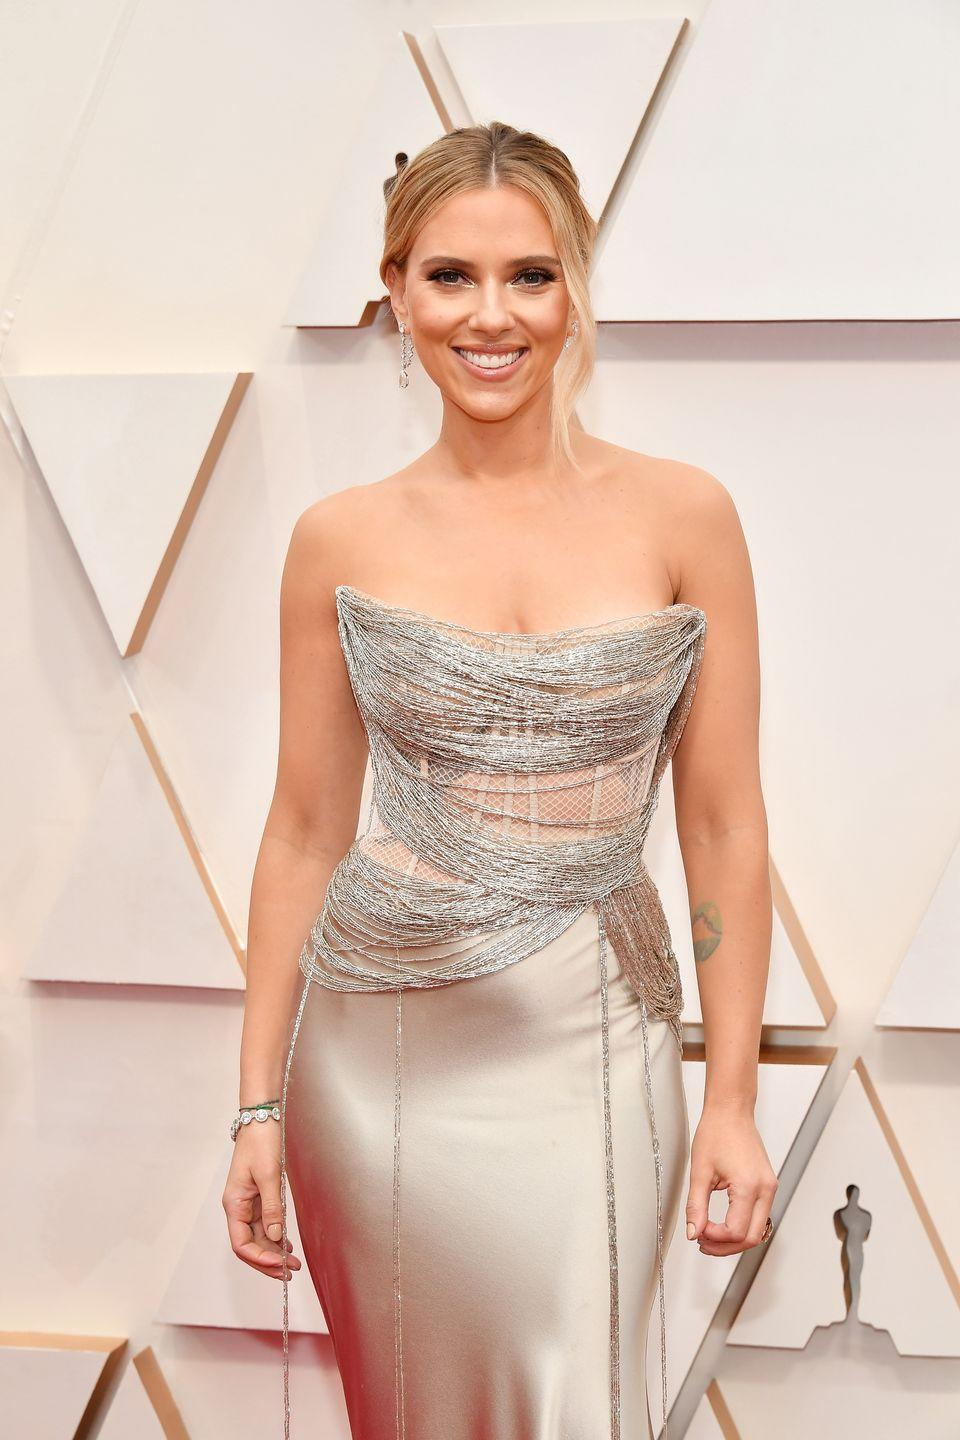 """<p>Scarlett Johansson had nearly 15 years of acting experience when she released <a href=""""https://open.spotify.com/album/2bBRv5VJOPSIHmSMhzfHXm?si=bIJGgbosQT6sjPY_KwWISQ"""" rel=""""nofollow noopener"""" target=""""_blank"""" data-ylk=""""slk:Anywhere I Lay My Head"""" class=""""link rapid-noclick-resp""""><em>Anywhere I Lay My Head</em></a>. Her beautifully haunting alto voice is accompanied by impressive instrumentals, but it was her subsequent projects that really caught the music world's attention. In 2009, she teamed up with her <a href=""""https://www.thewrap.com/scarlett-johansson-leaves-manager-rick-yorn-two-decades-exclusive/"""" rel=""""nofollow noopener"""" target=""""_blank"""" data-ylk=""""slk:former manager"""" class=""""link rapid-noclick-resp"""">former manager</a>'s son, musician Pete Yorn, on <a href=""""https://open.spotify.com/album/24mEKo2SeIgyfdAlyCvI0H?si=H4THHehMQ42JuvoDN7qmoA"""" rel=""""nofollow noopener"""" target=""""_blank"""" data-ylk=""""slk:Break Up"""" class=""""link rapid-noclick-resp""""><em>Break Up</em></a>. They reunited nine years later for <a href=""""https://open.spotify.com/album/19Kj3VuXLp7tCRWqq0h4l3?si=jPzc6c7fQS6BW3qkAIPBrg"""" rel=""""nofollow noopener"""" target=""""_blank"""" data-ylk=""""slk:Apart"""" class=""""link rapid-noclick-resp""""><em>Apart</em></a>.</p>"""